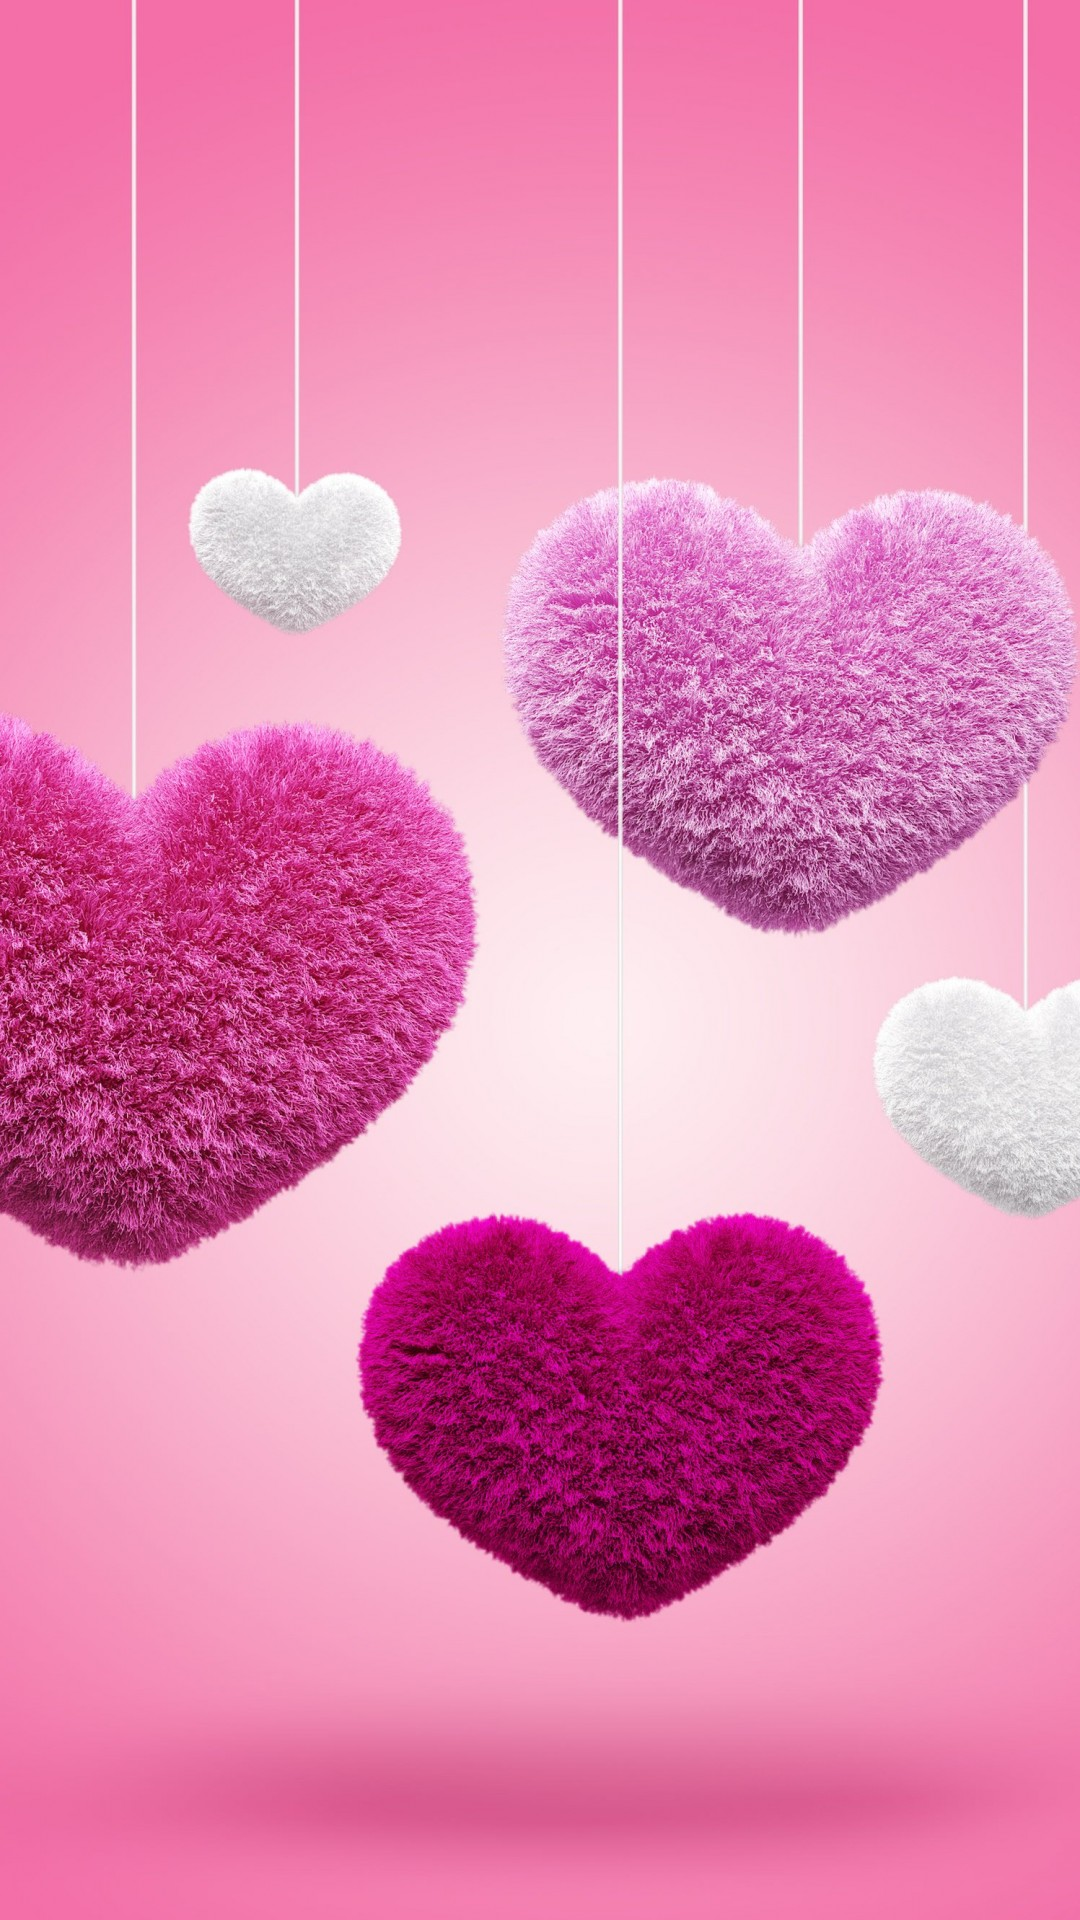 Wallpaper download hd love for mobile - Fluffy Hearts Hd Wallpaper For One Screens Hdwallpapers Net